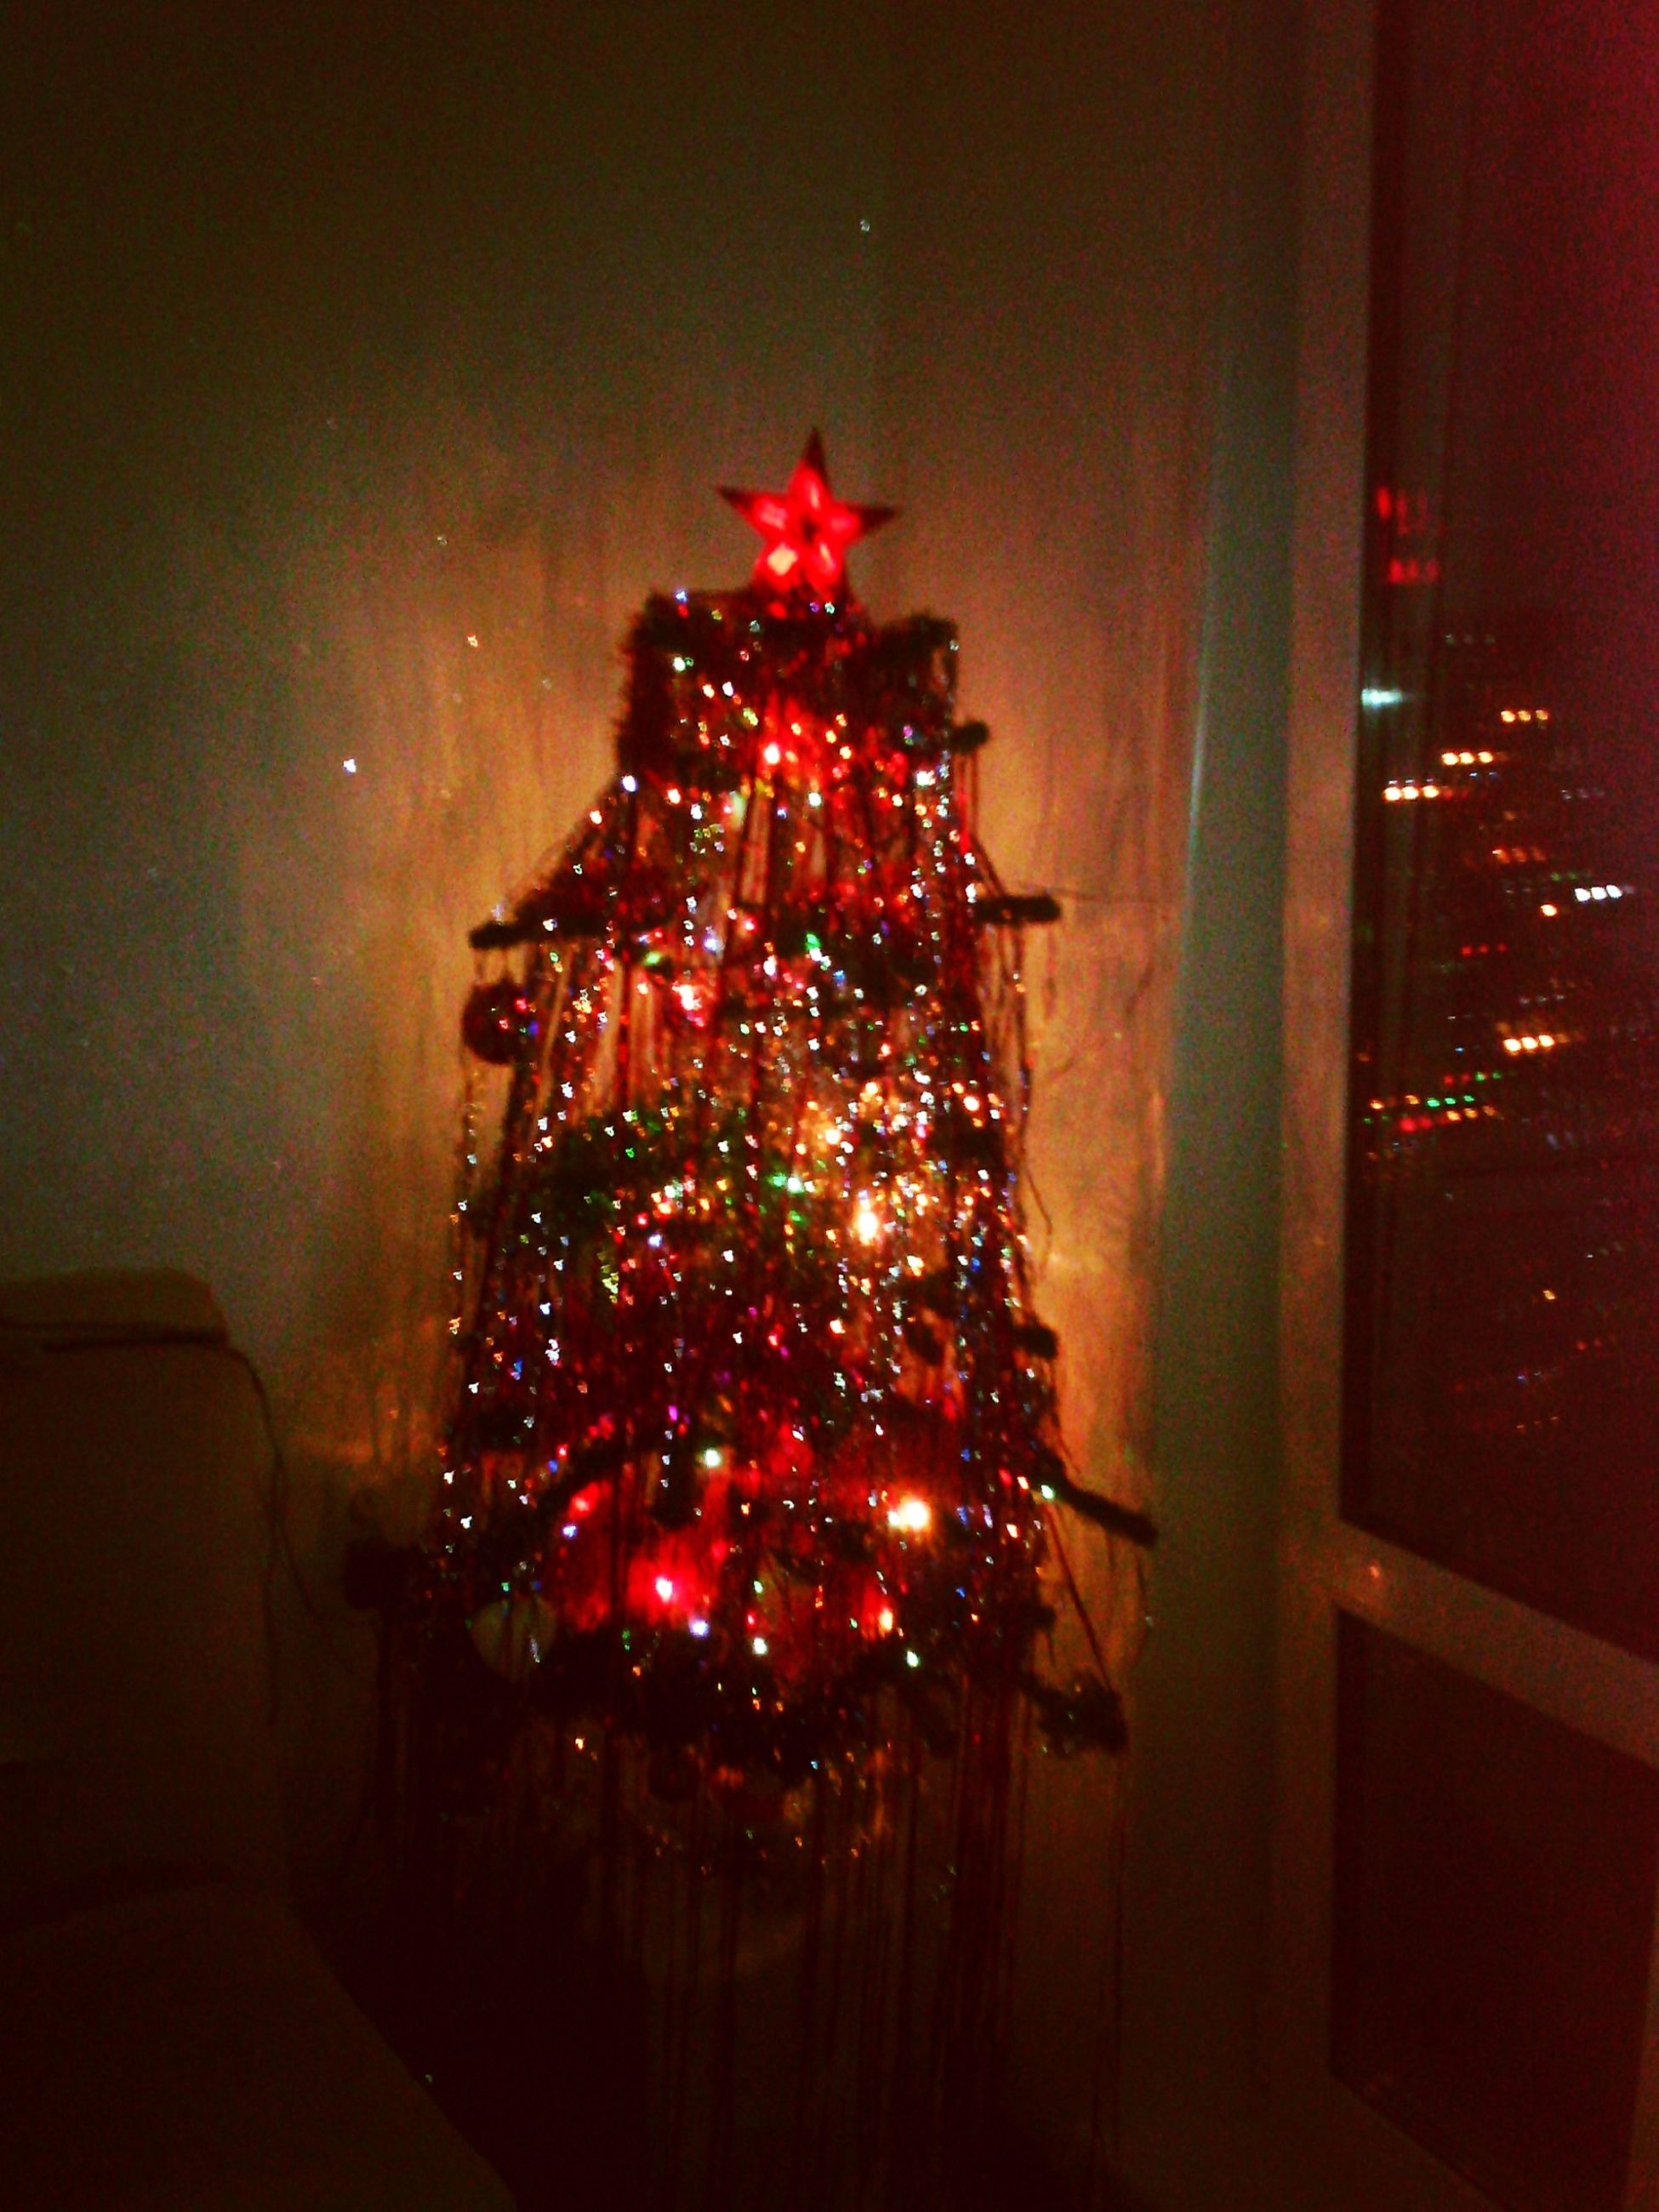 illuminated, indoors, decoration, night, lighting equipment, red, christmas, christmas tree, christmas decoration, architecture, built structure, celebration, hanging, decor, glass - material, christmas lights, home interior, no people, transparent, light - natural phenomenon